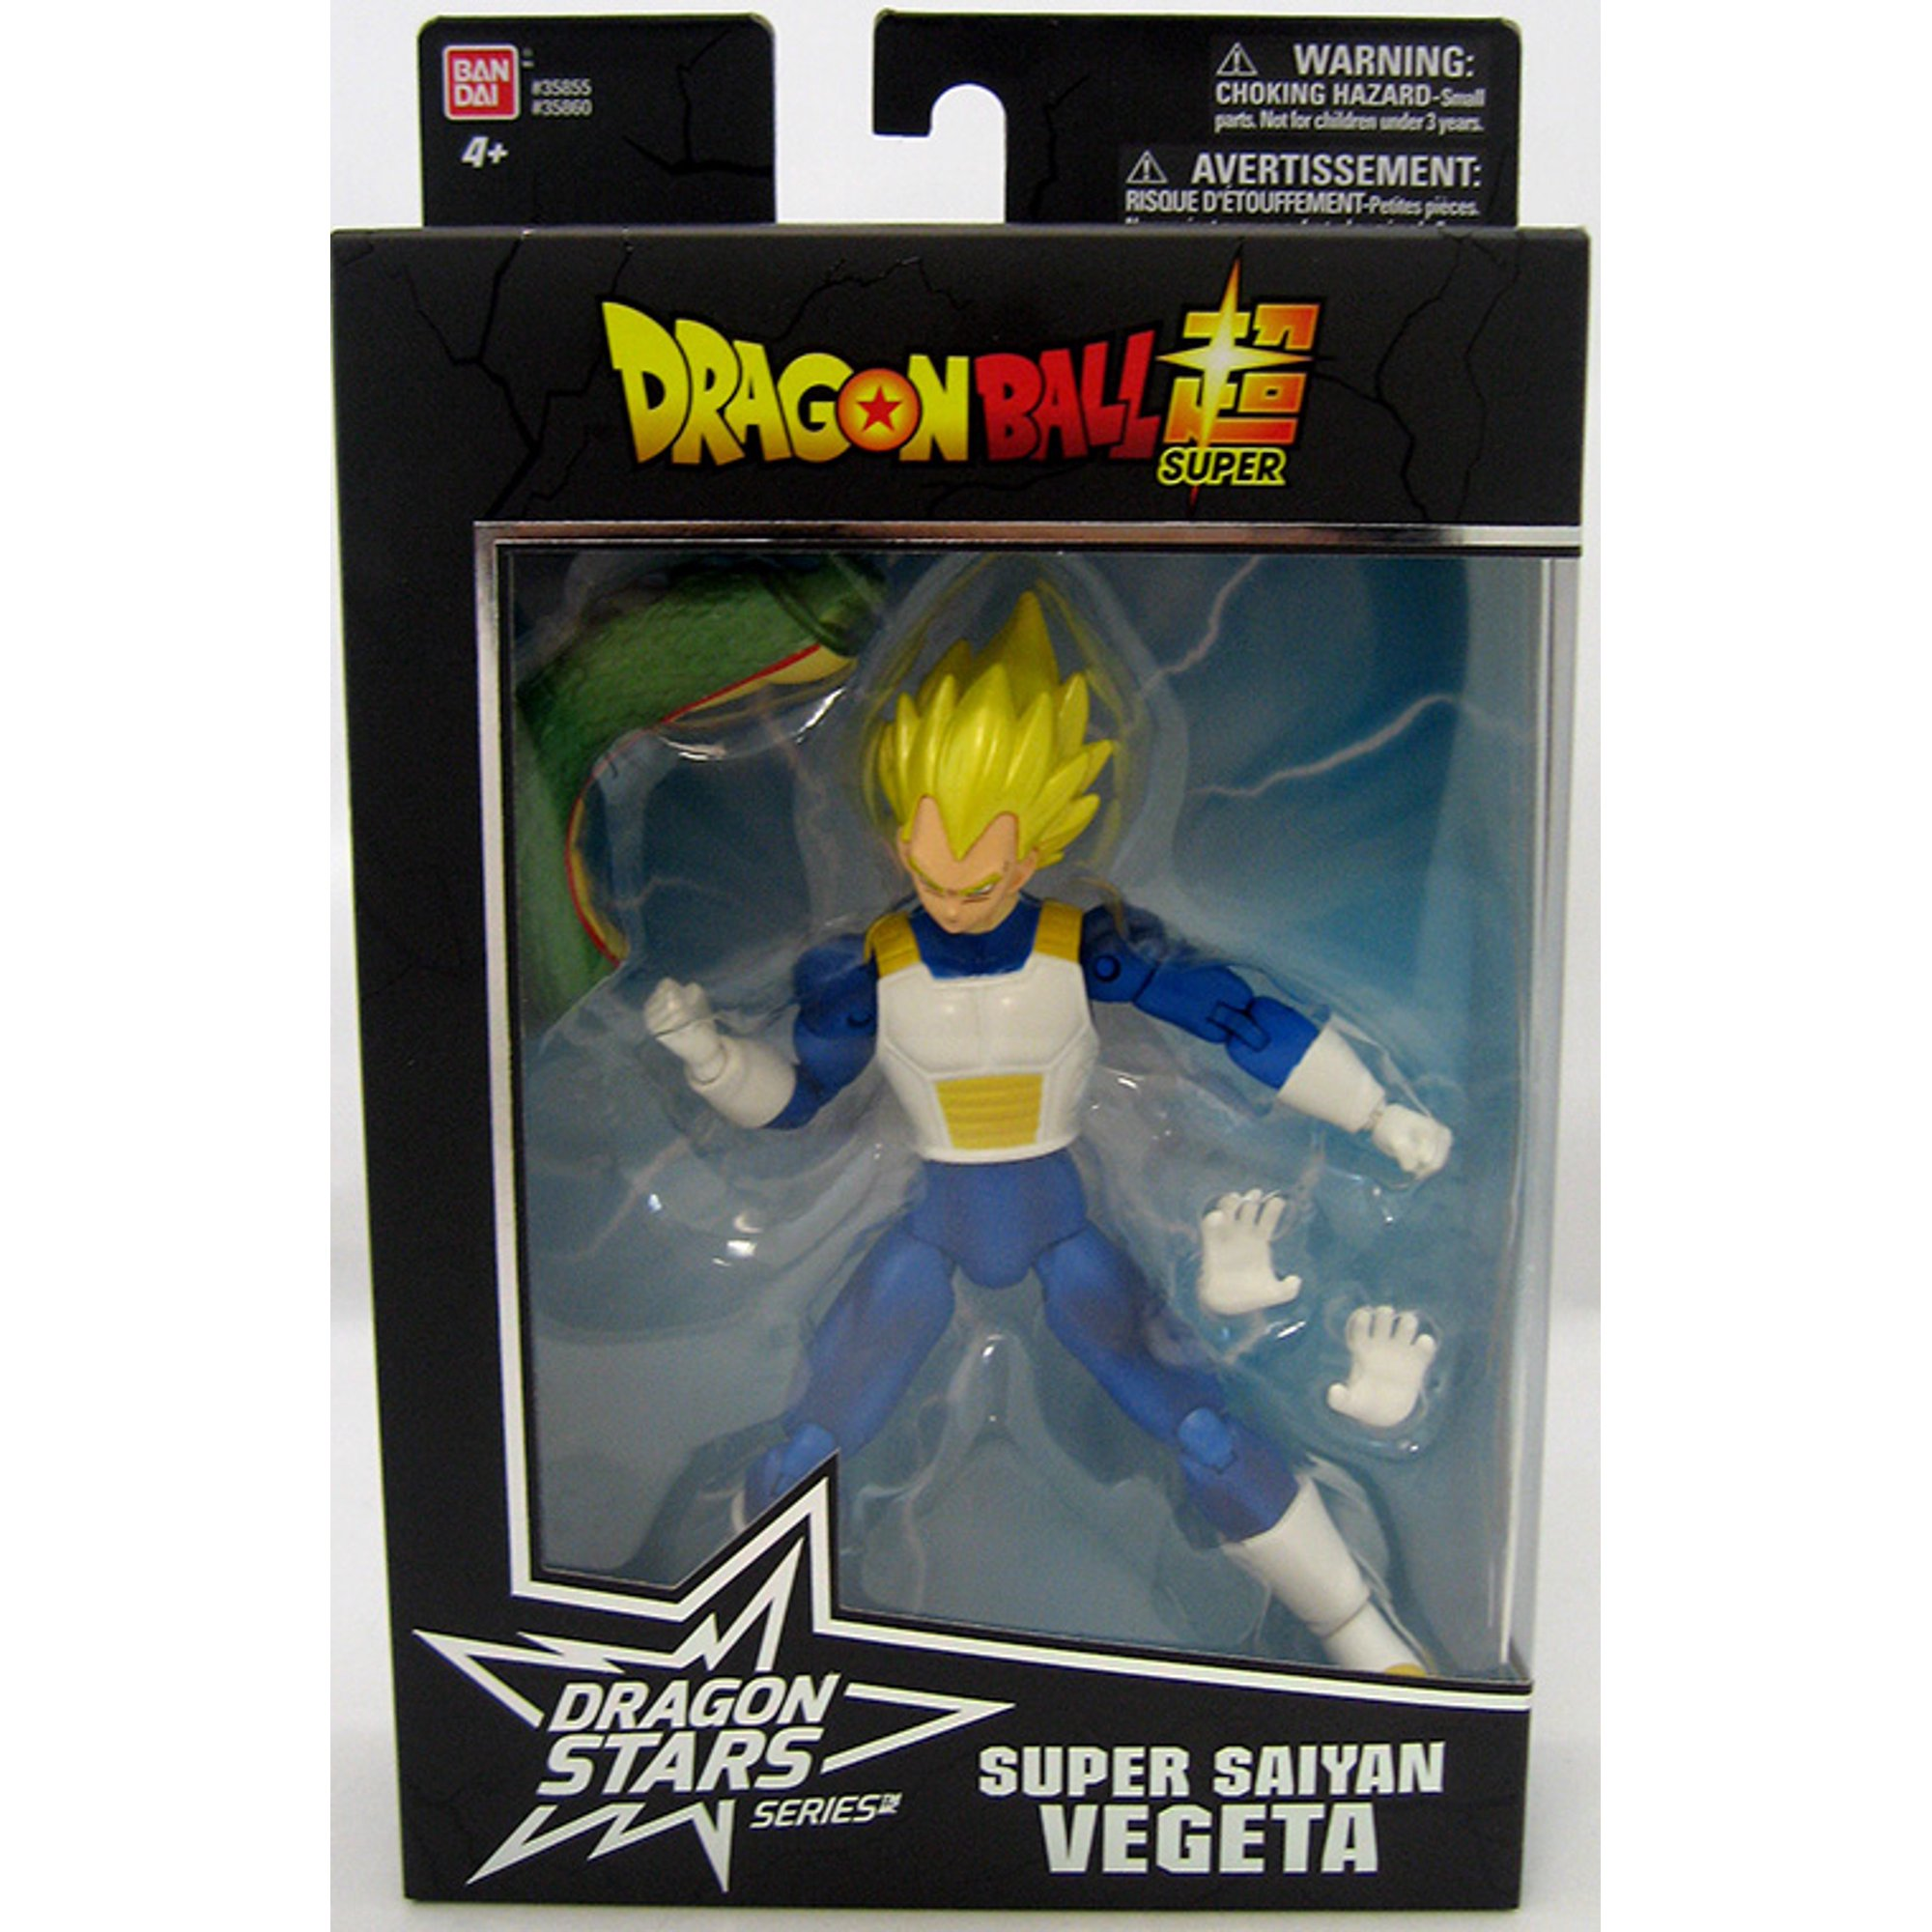 Dragonball Super 6 Inch Action Figure Dragon Stars Series 2 Super Saiyan Vegeta